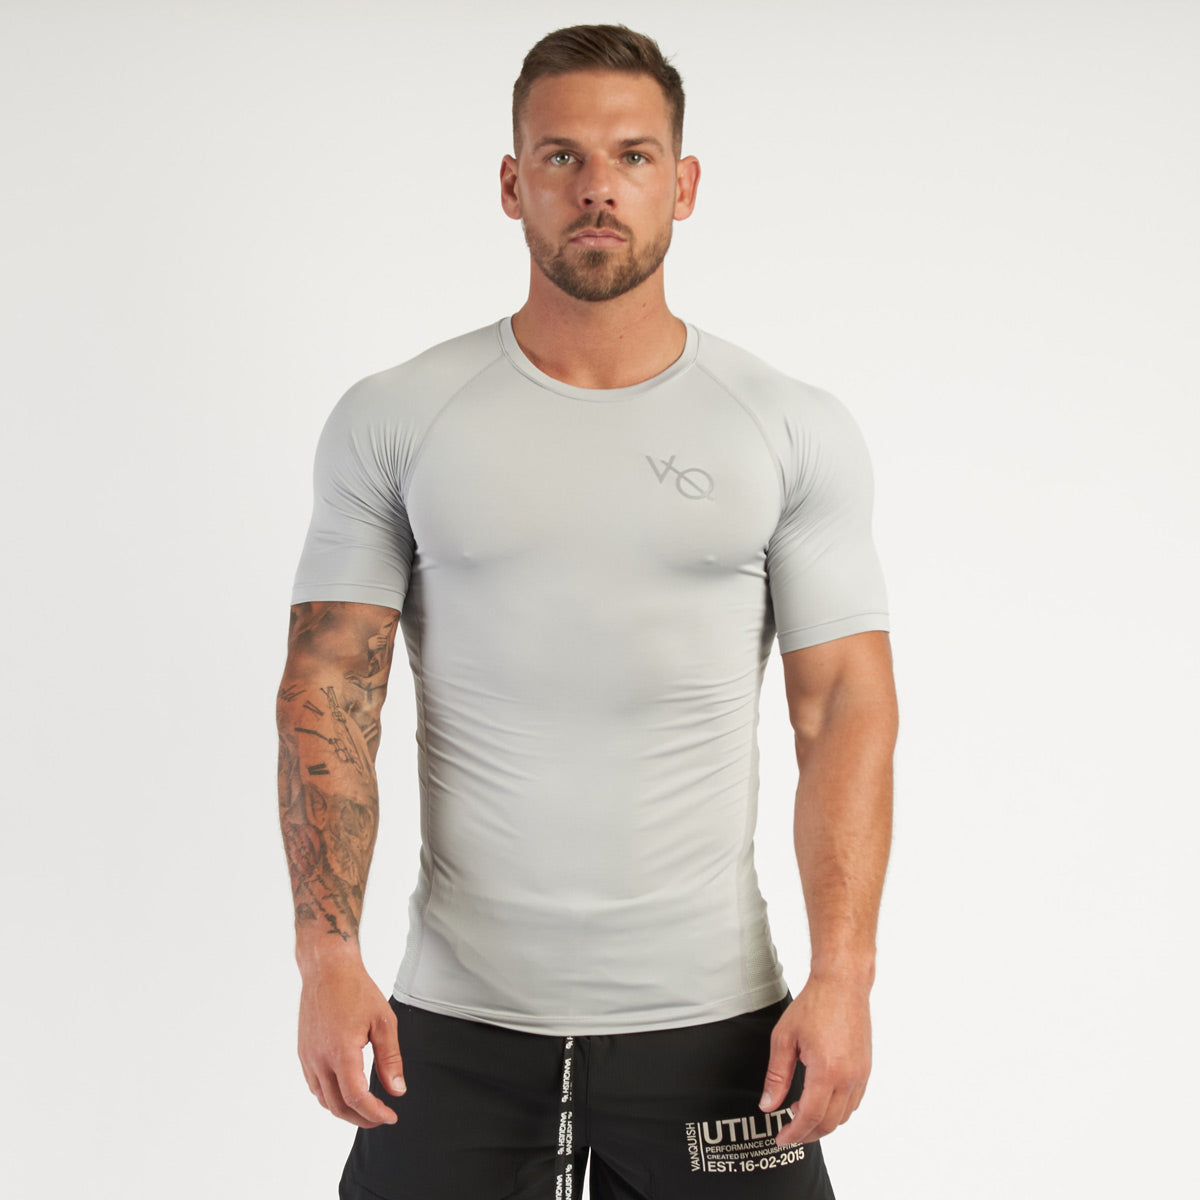 Vanquish Utility Men's Grey Short Sleeved Compression T Shirt